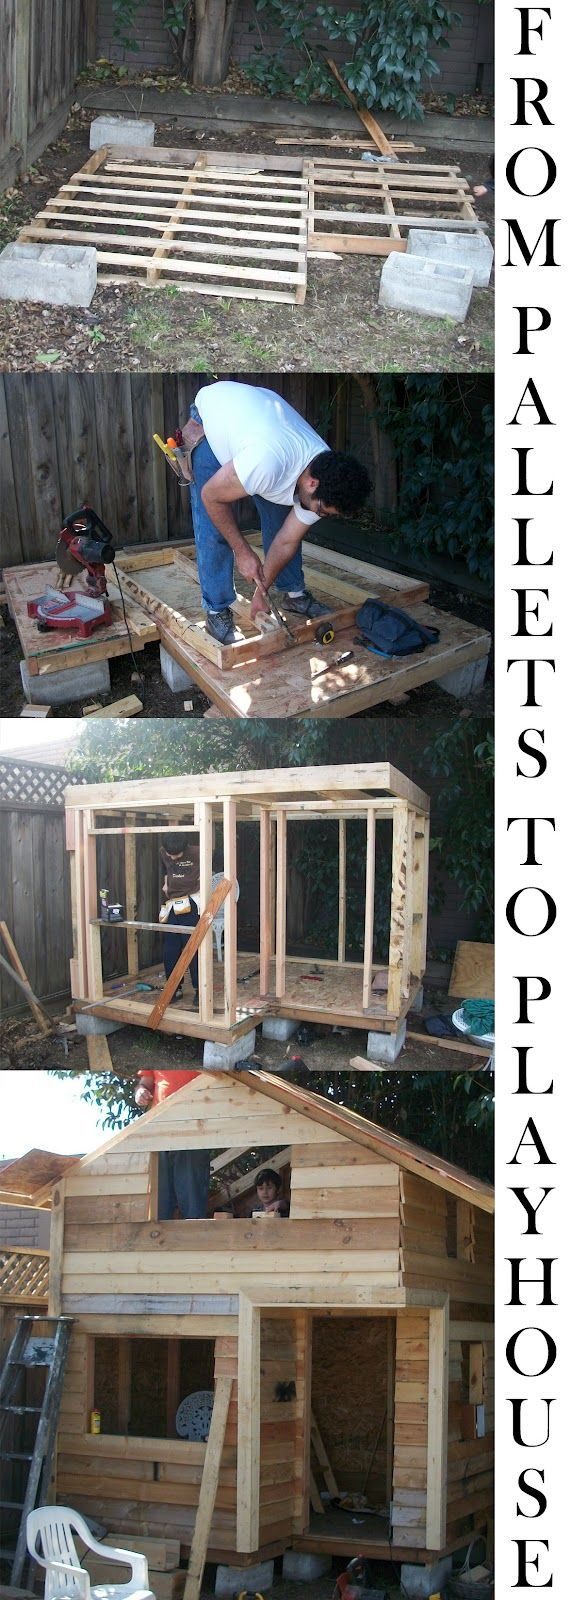 Pallet Playhouse on cinder blocks